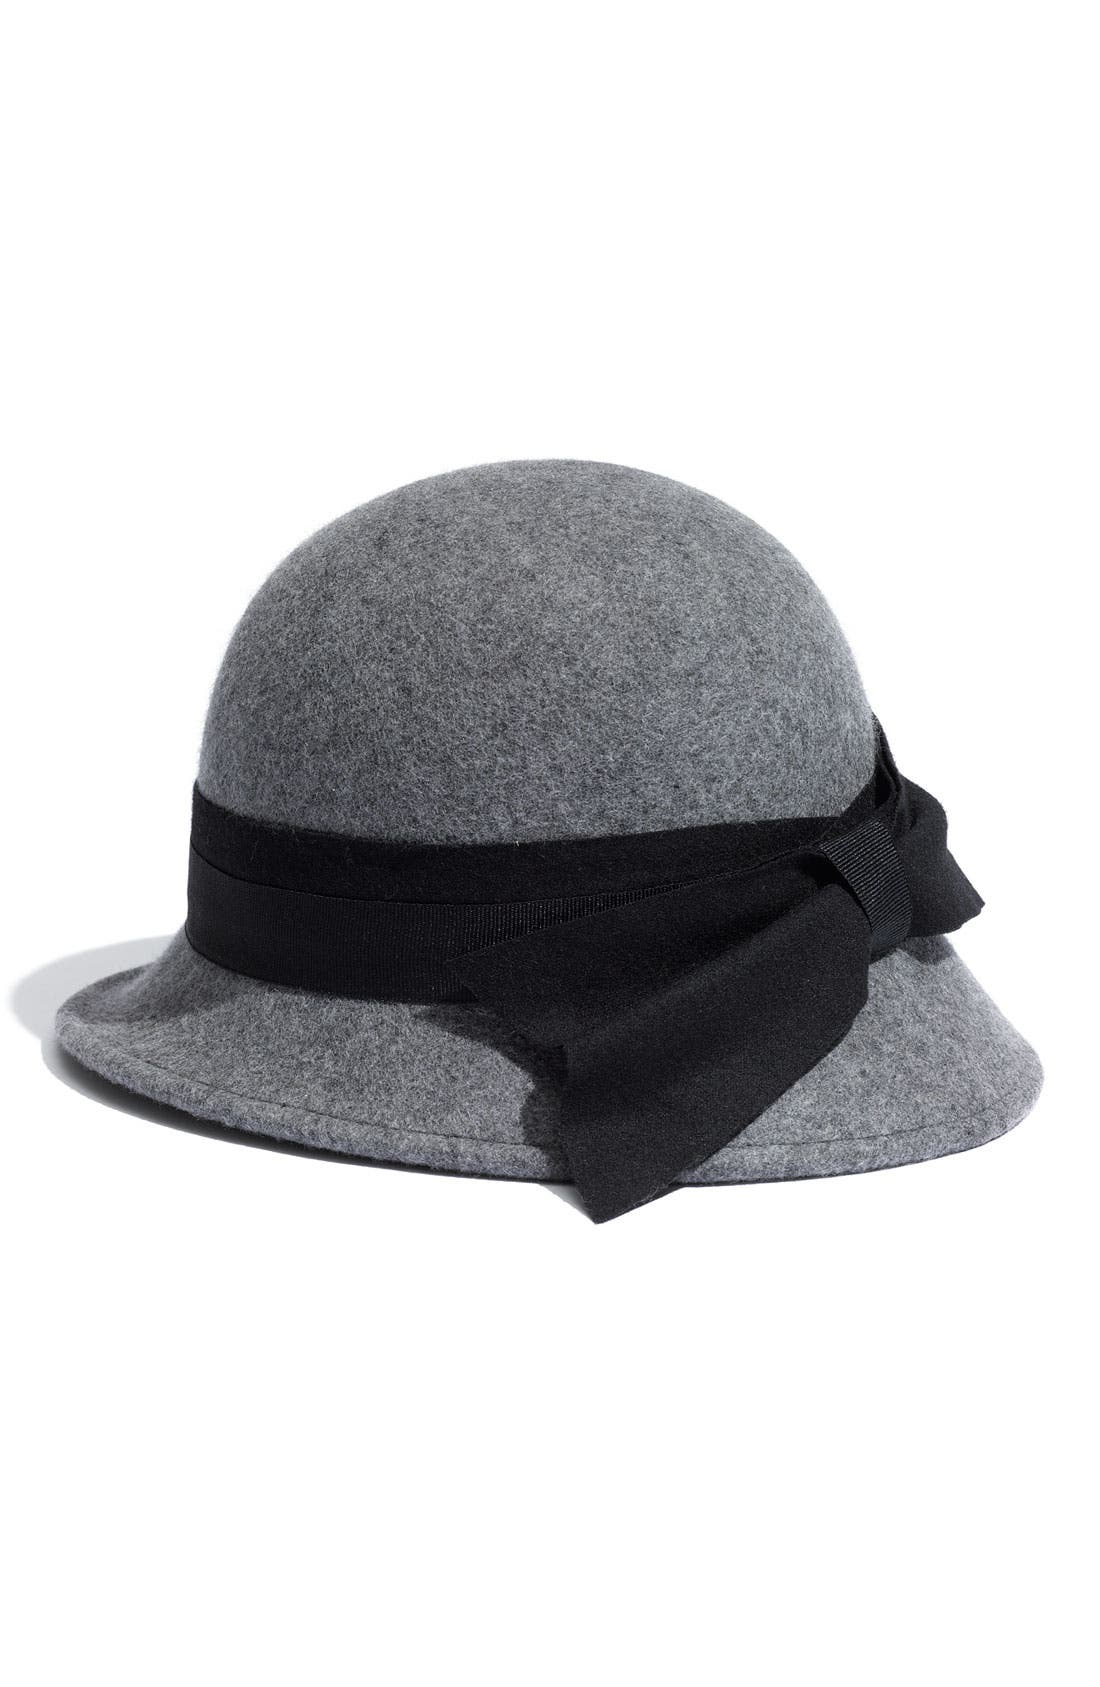 Alternate Image 1 Selected - Nordstrom Side Bow Cloche